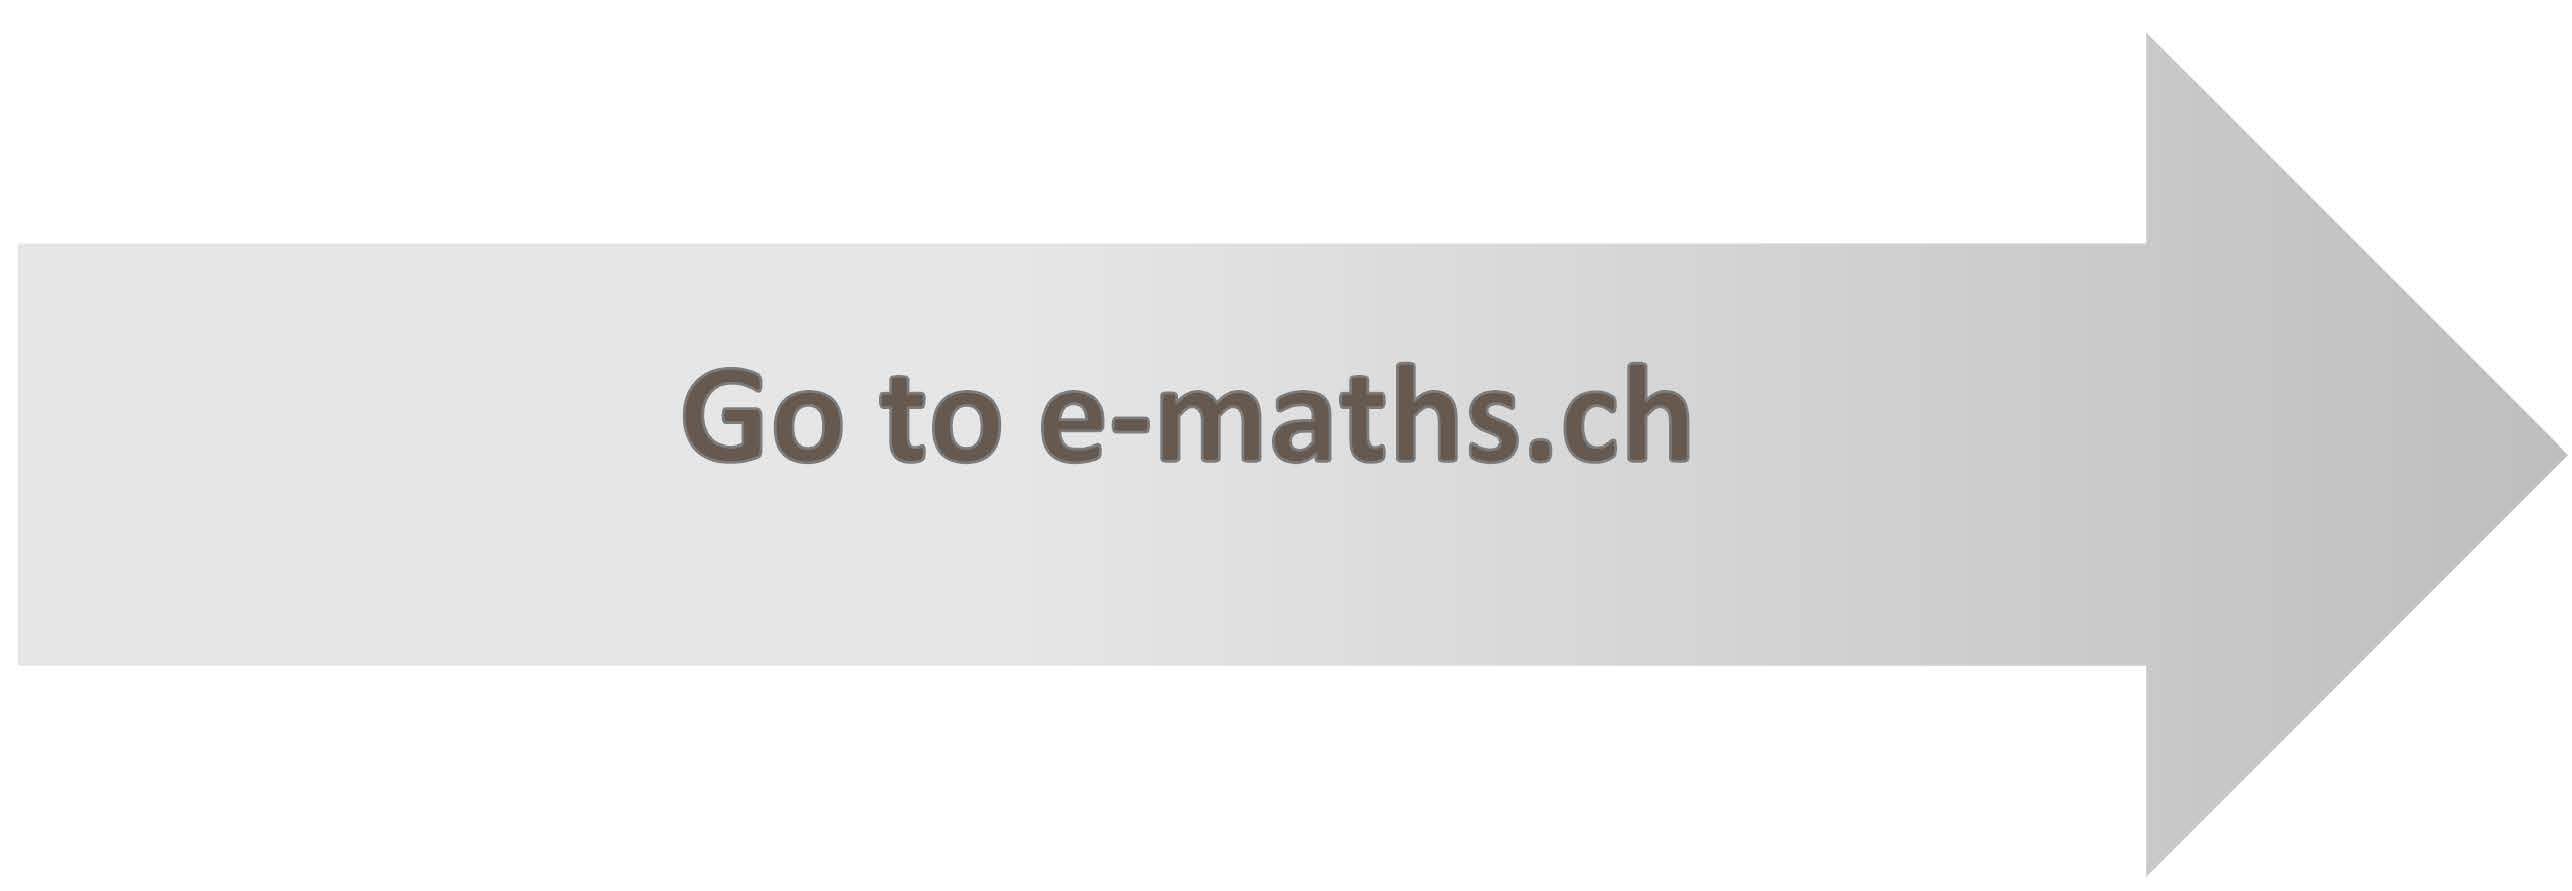 go to e-maths.ch